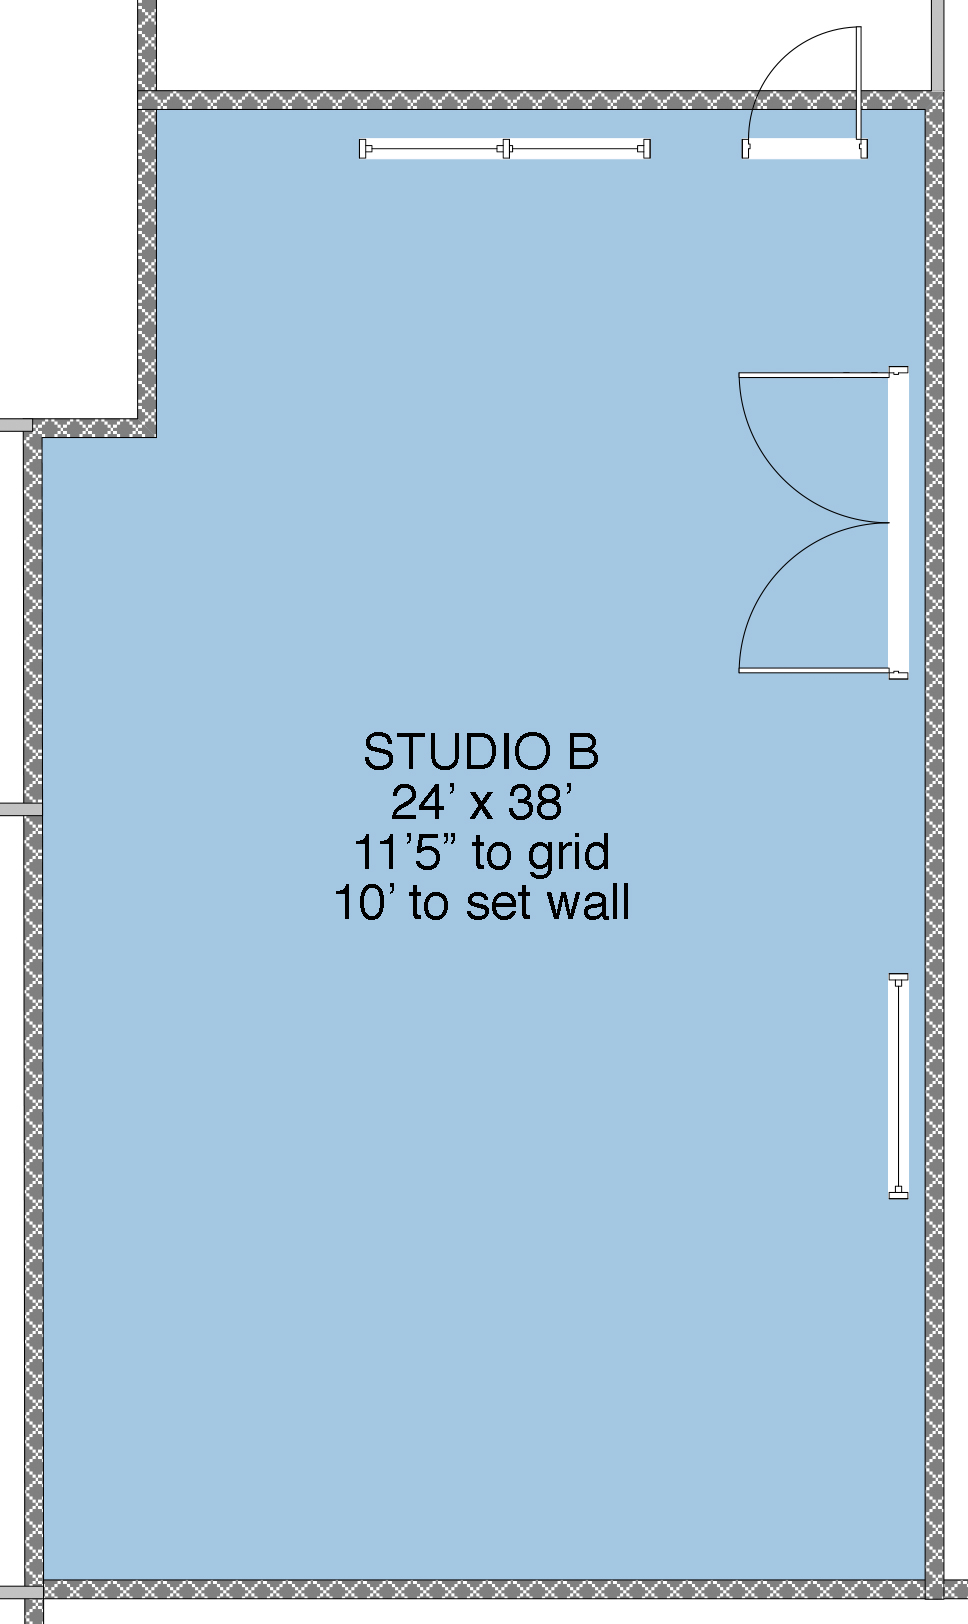 Studio B floor plan